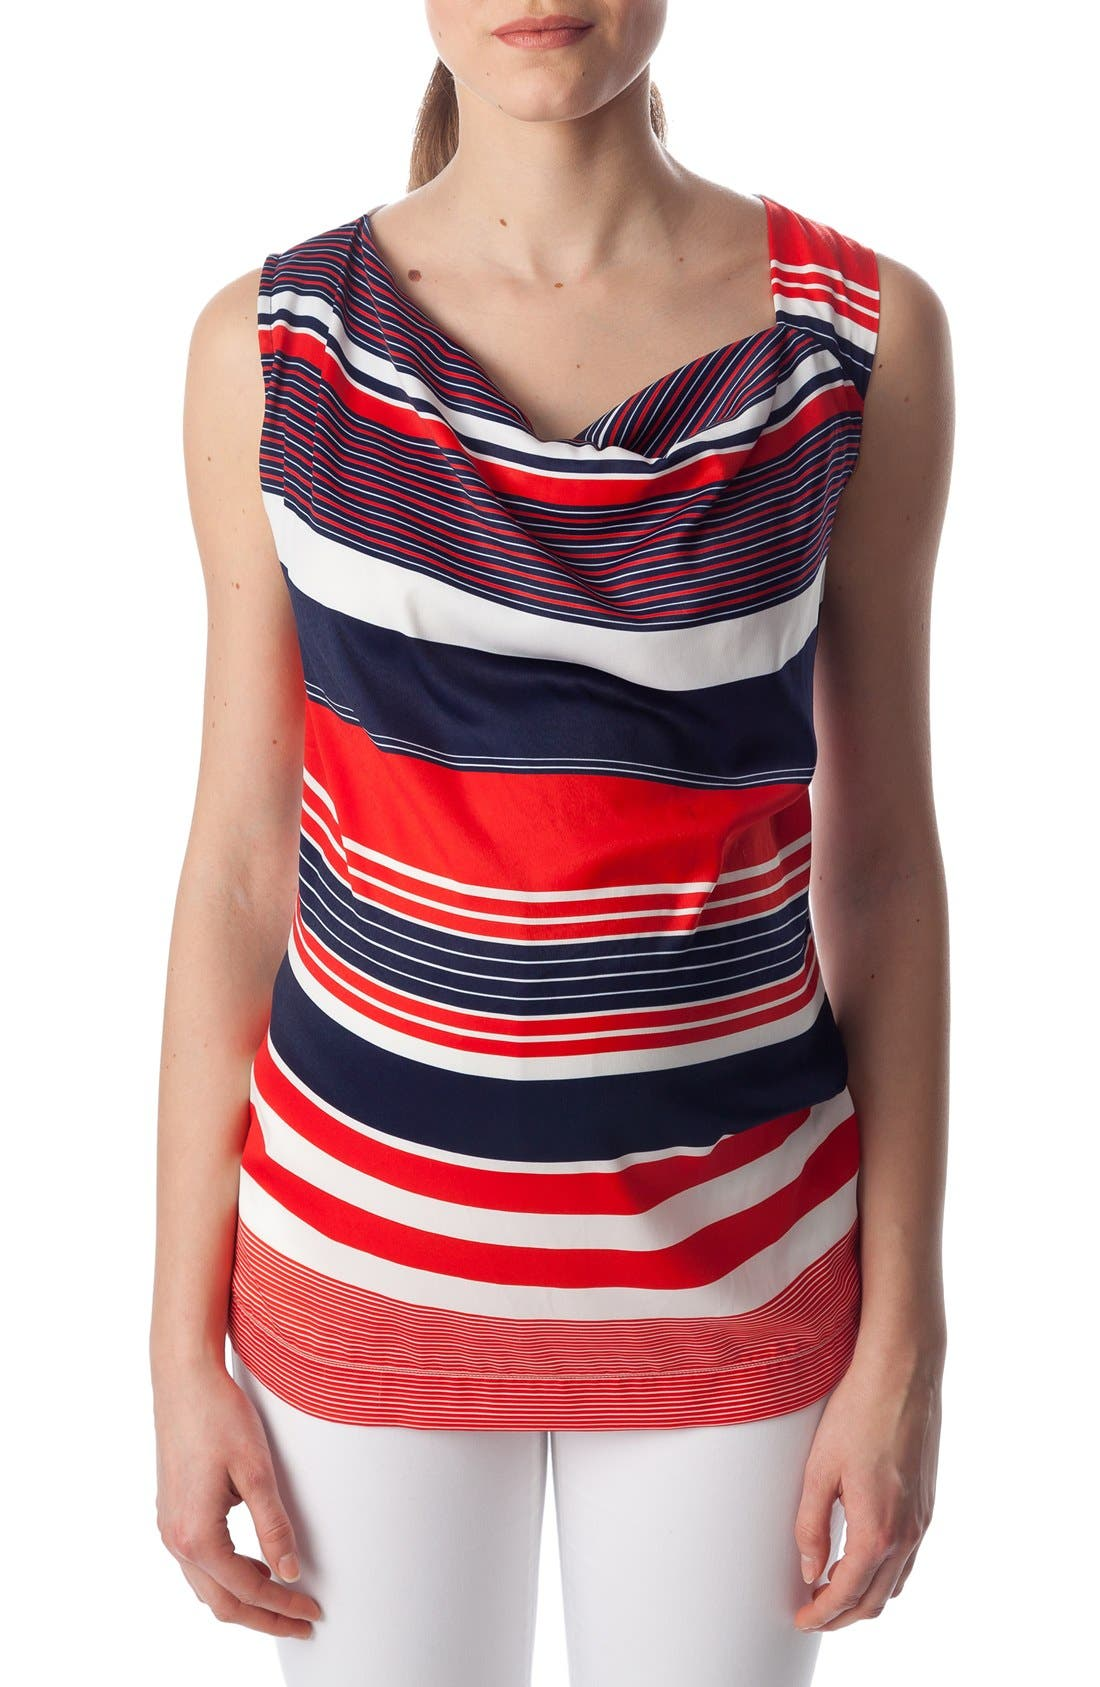 'Fialka' Maternity Top,                             Alternate thumbnail 4, color,                             RED/BLUE STRIPES